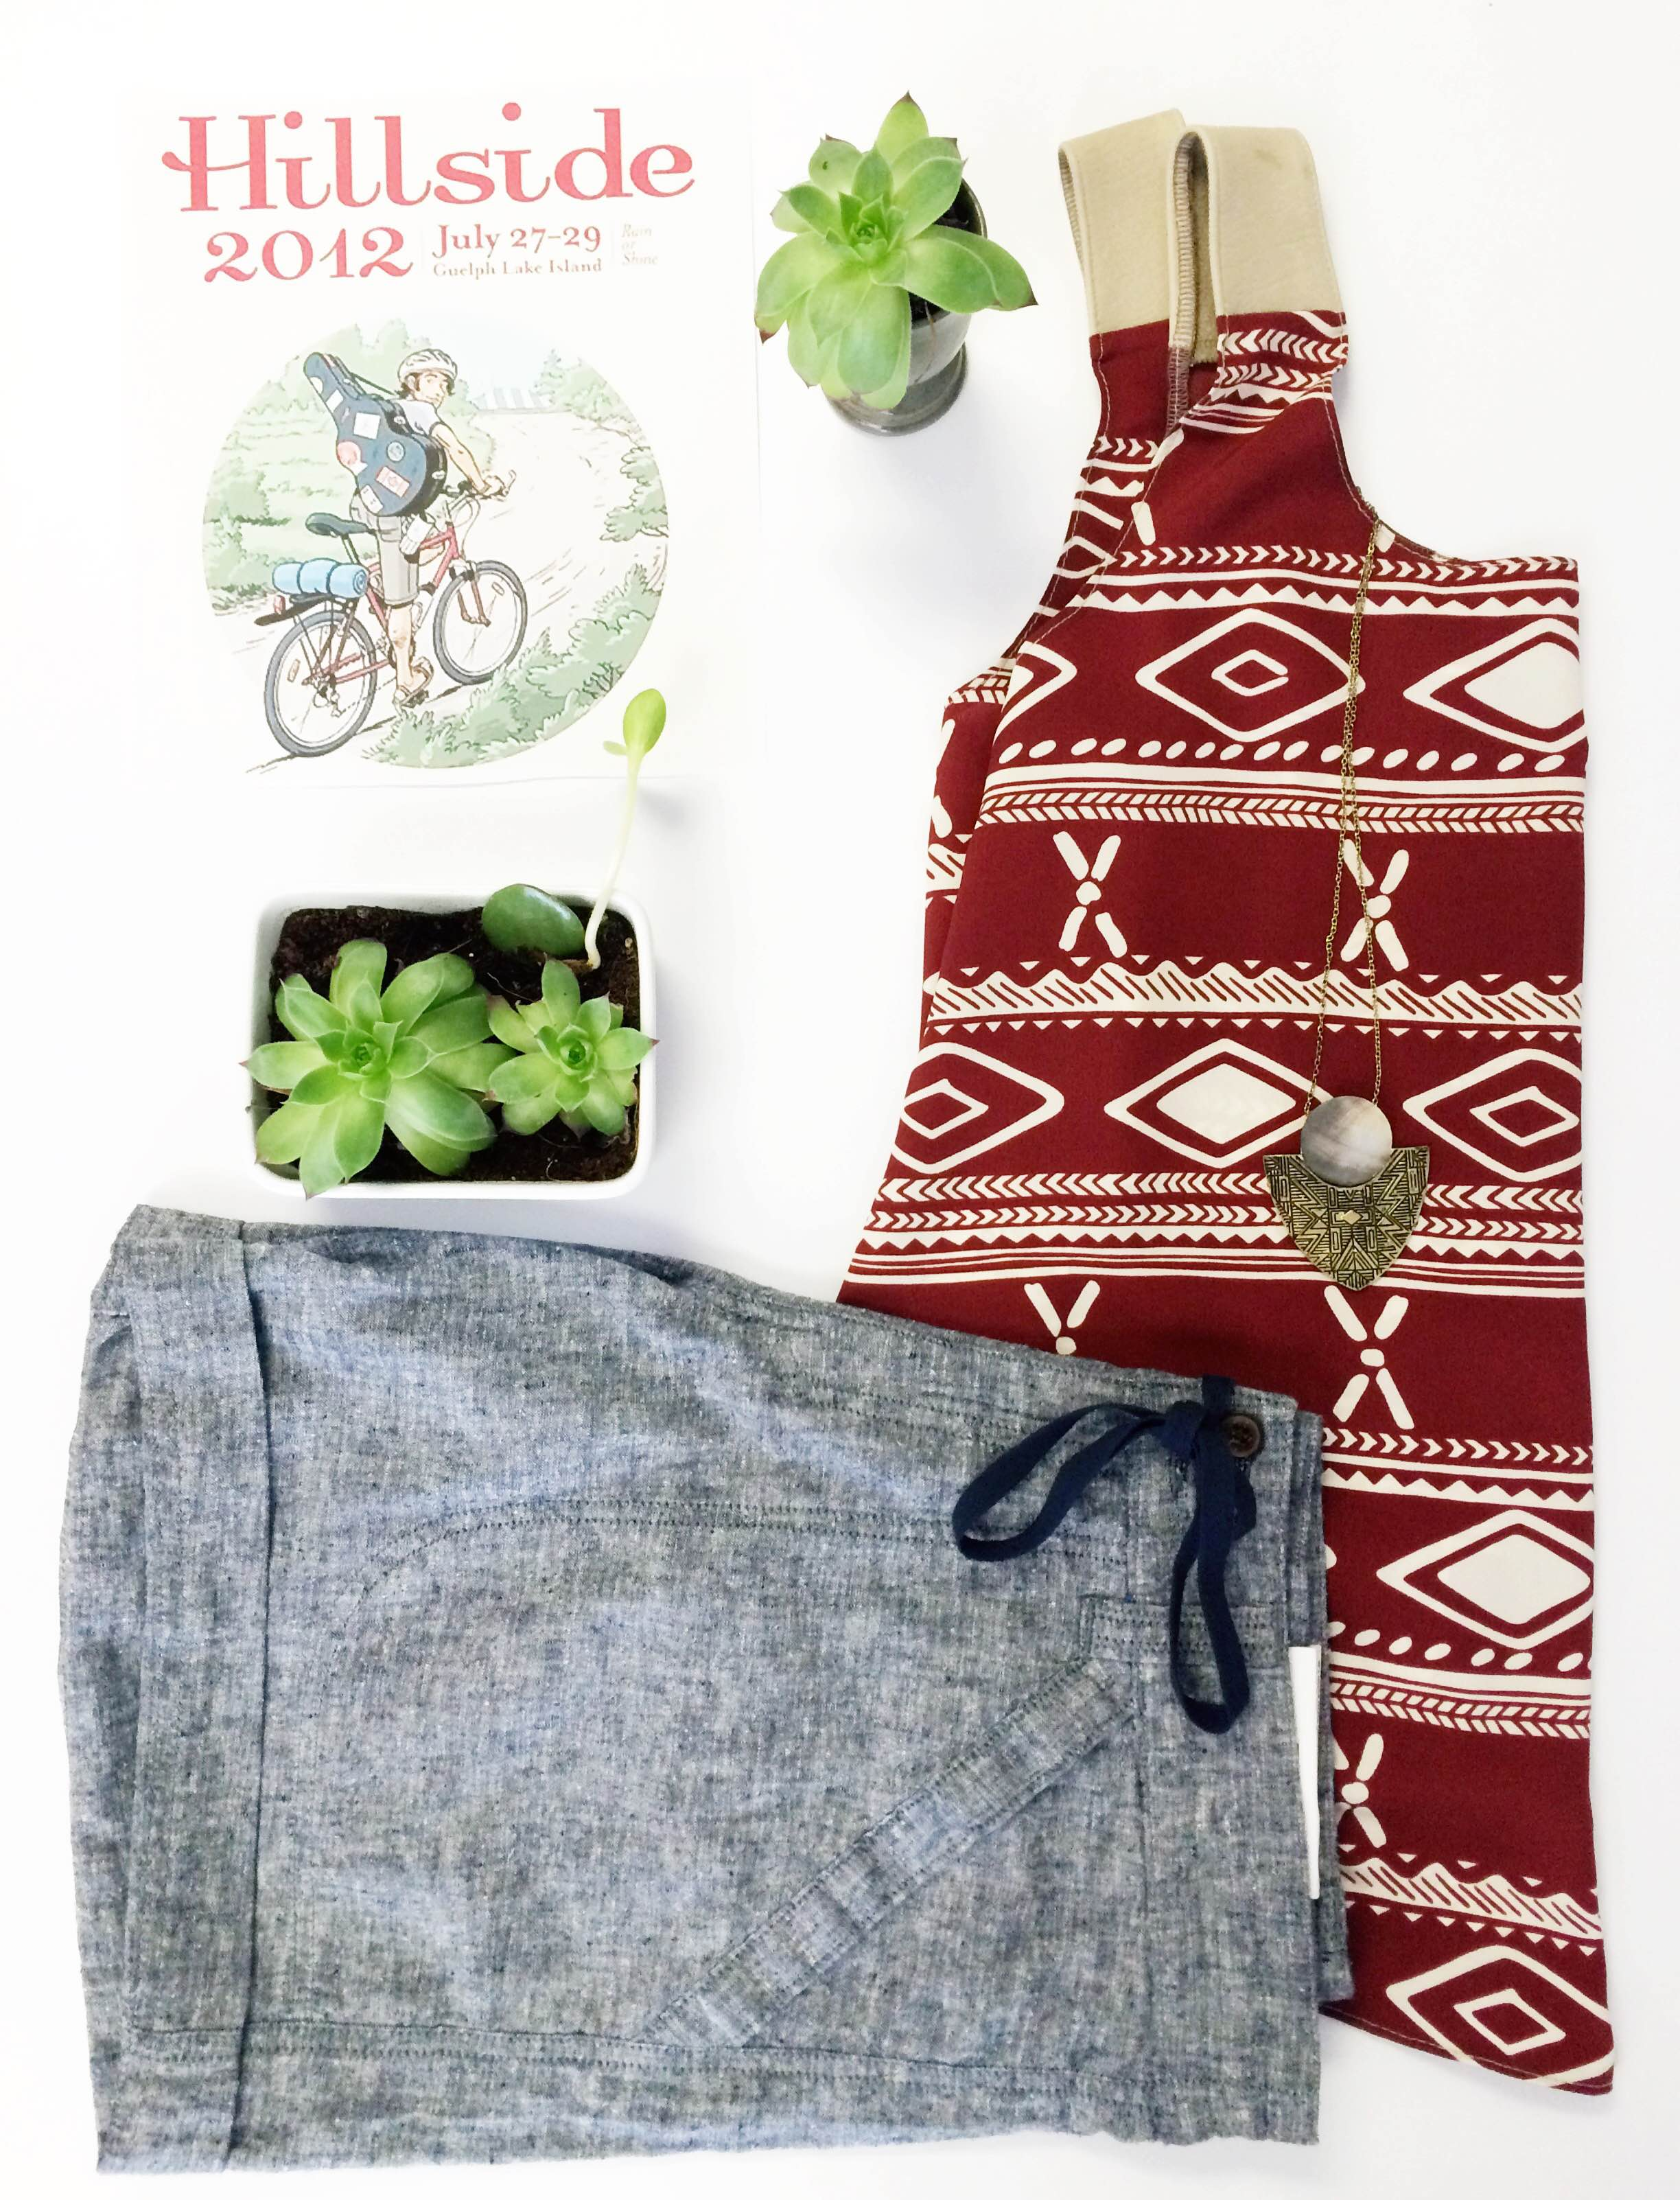 For our 2012 themed post, we're featuring Fred & Bean - an alternative thrifted clothing line from Arthur, Ontario. Fred & Bean's reversible tank is light and breezy but also still stylish. We've paired the top with our favourite Patagonia Cotton and Hemp chambray shorts. Keep an eye out for Fred & Bean while you're on the island!